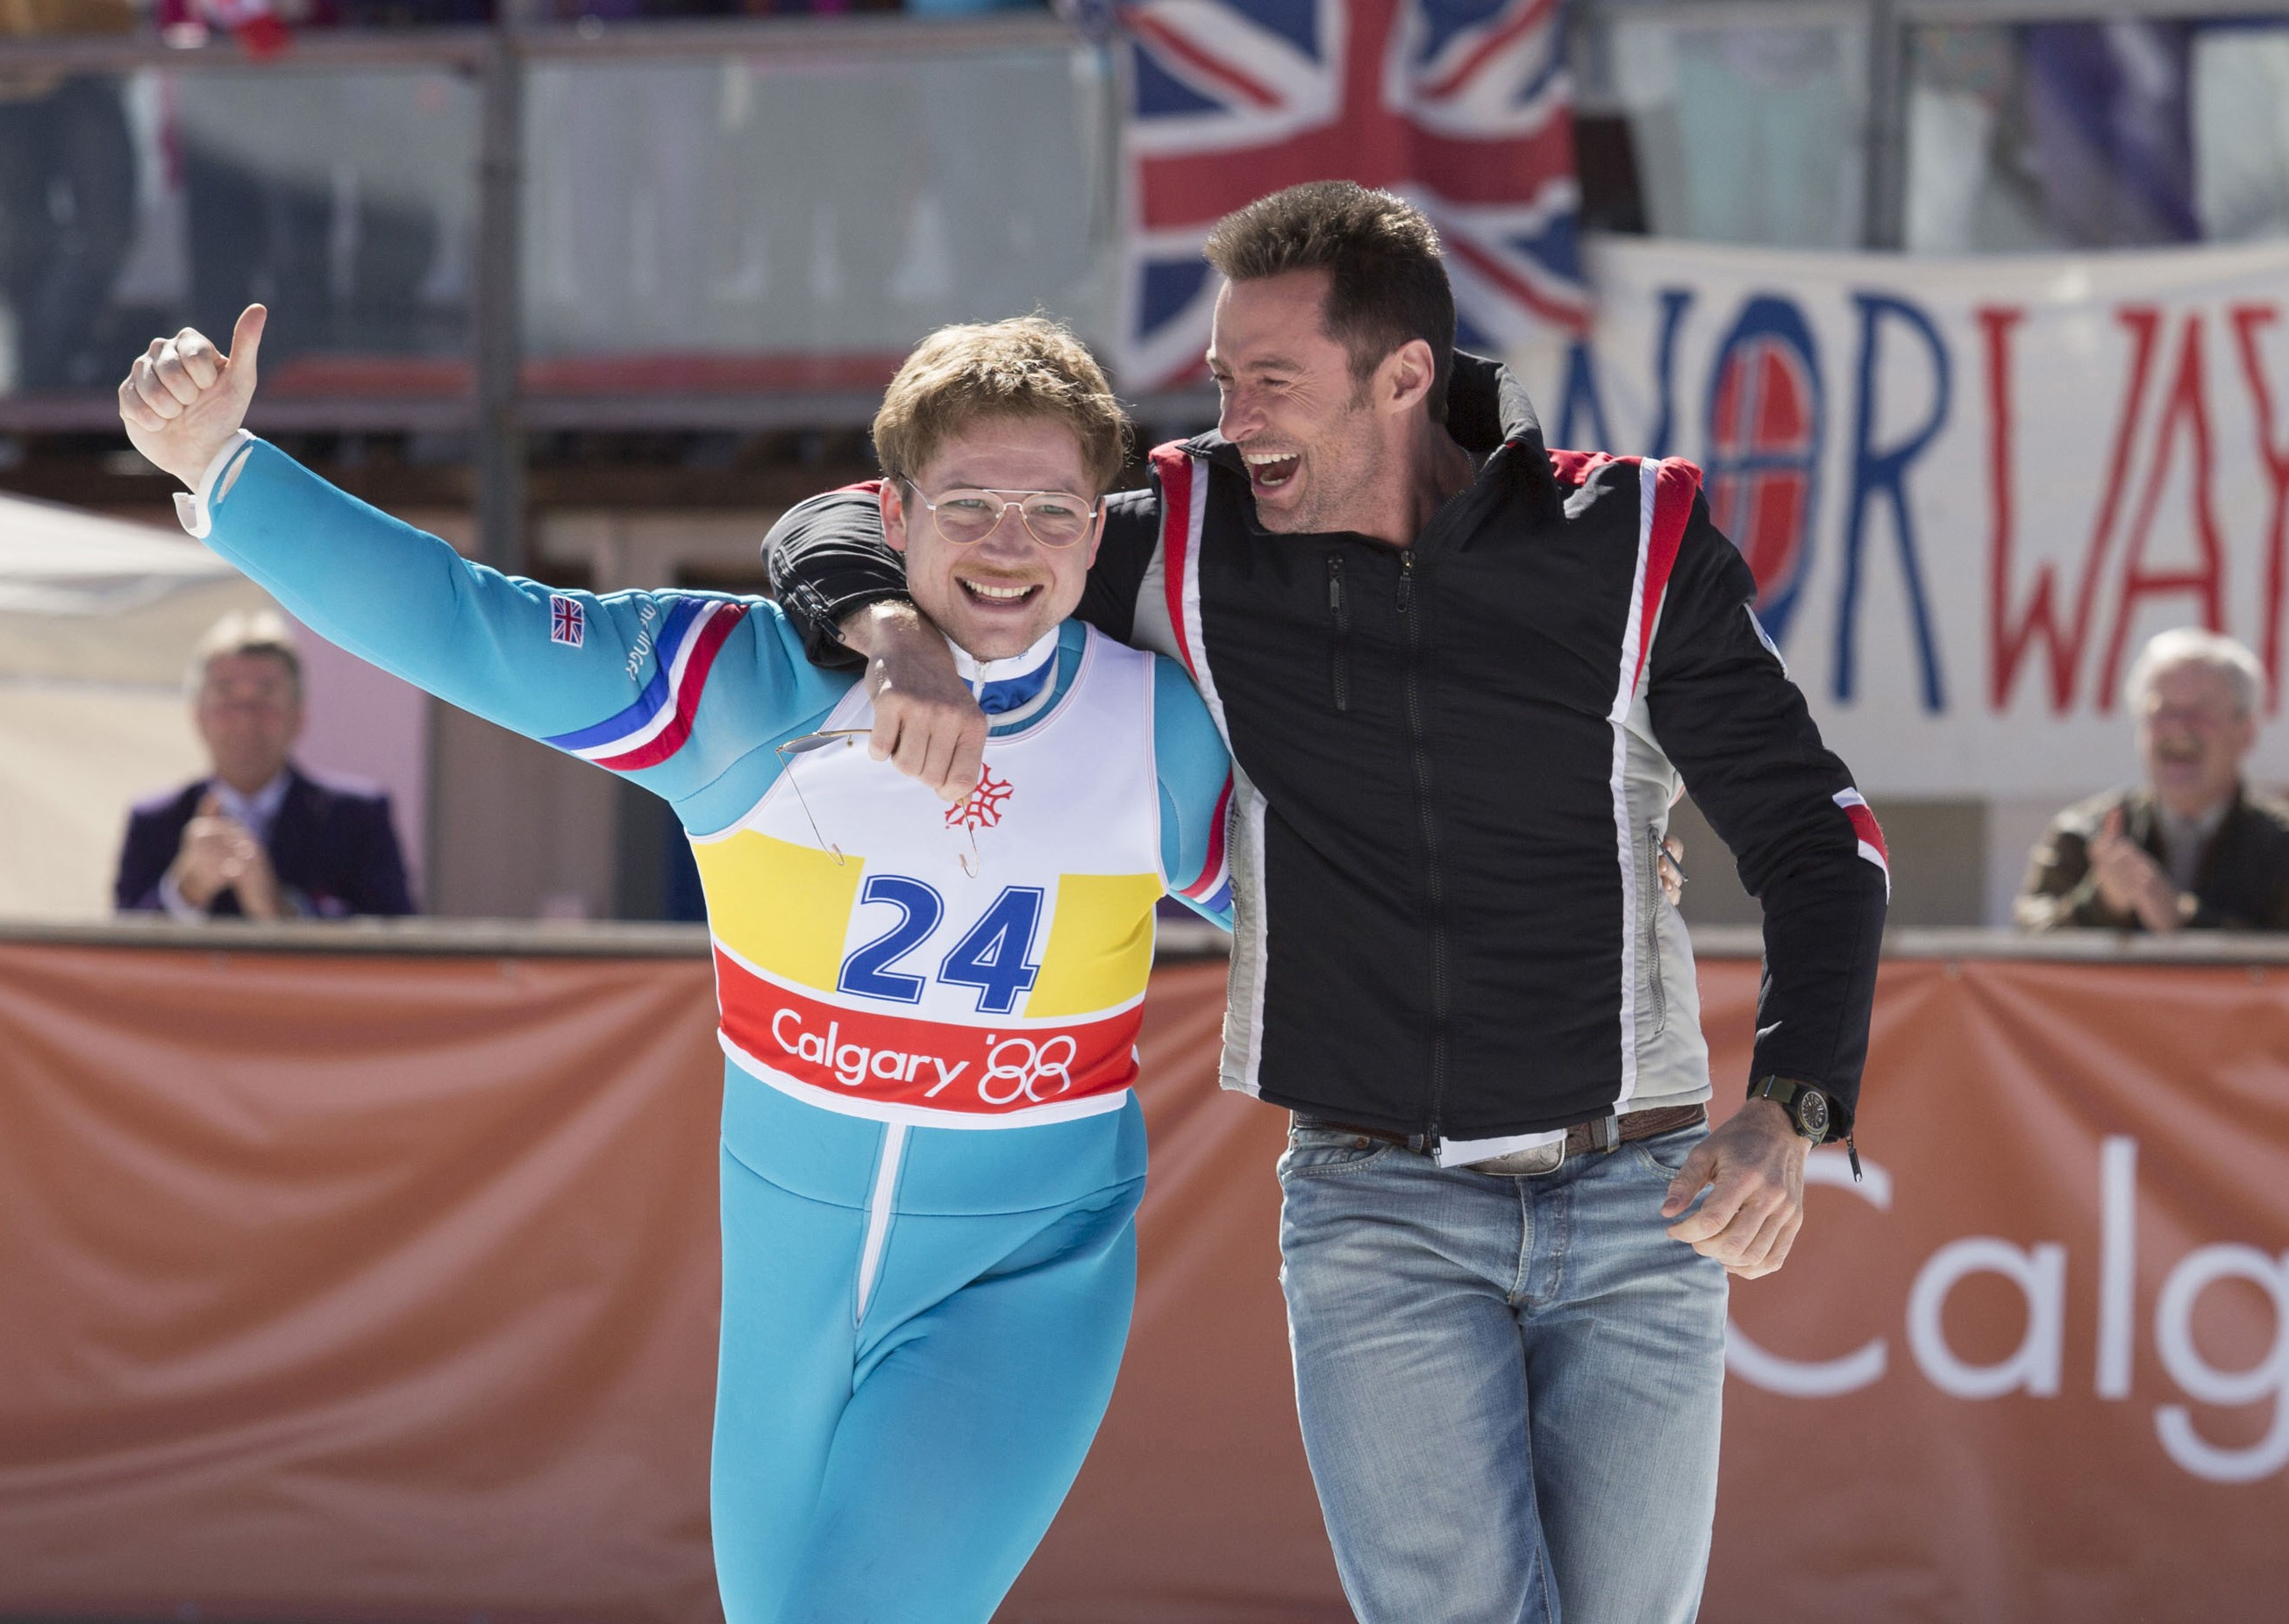 Eddie (Taron Egerton) and his coach Bronson Peary (Hugh Jackman) rejoice in Eddie's triumph. Photo Credit: Larry Horricks. Courtesy of Twentieth Century Fox.